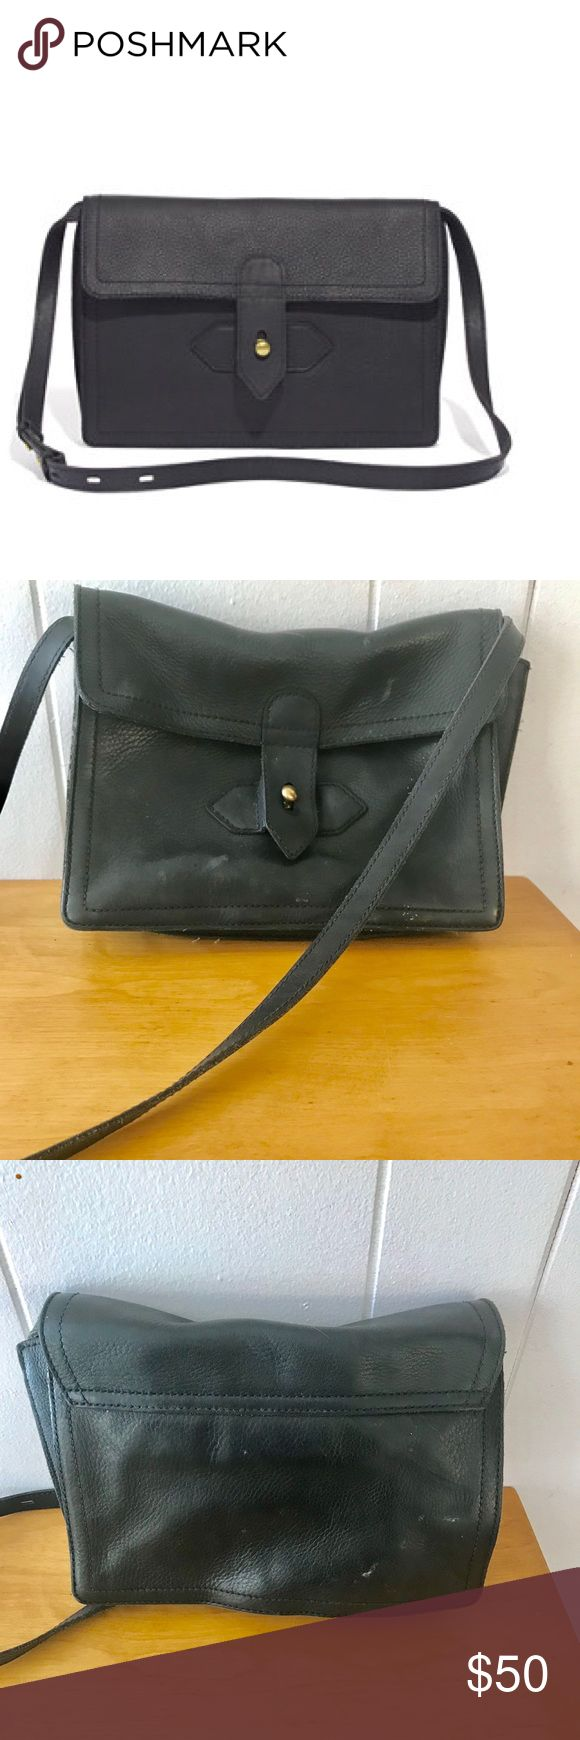 Madewell Sketchbook Bag- Black Leather Adorable crossbody from Madewell. Bag has some wear, but is still in good condition. Madewell Bags Crossbody Bags